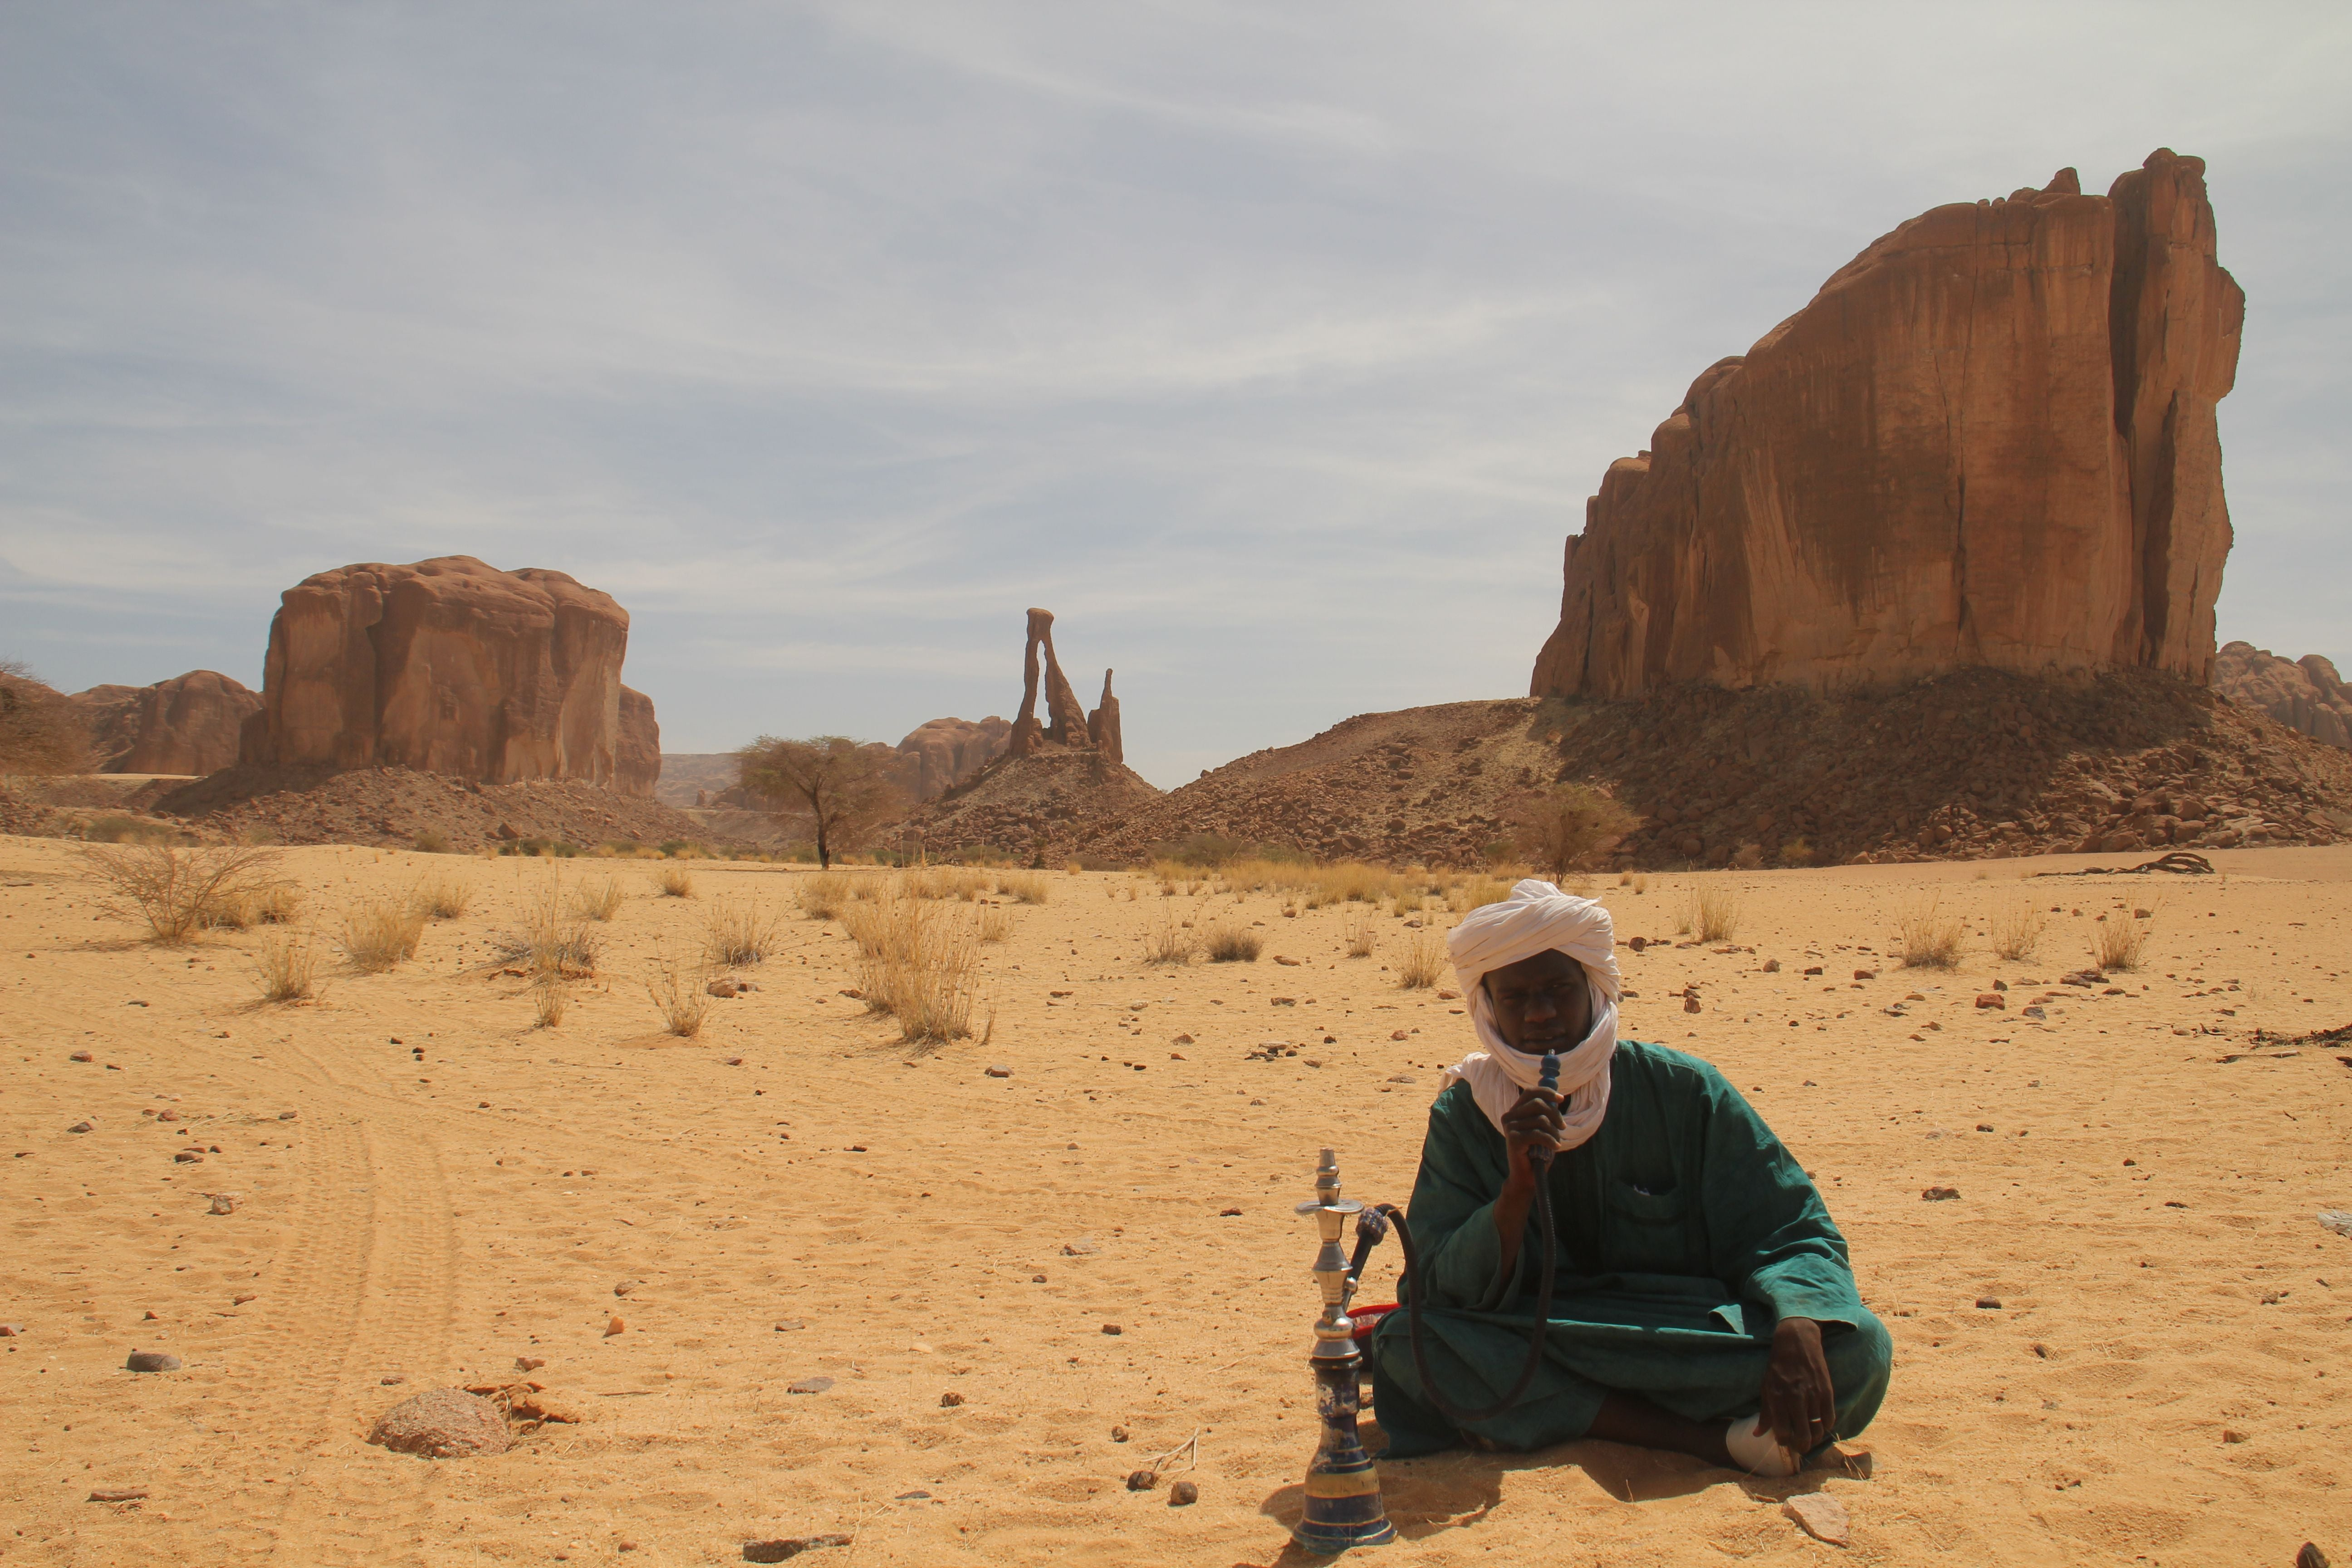 Landscape in Chad